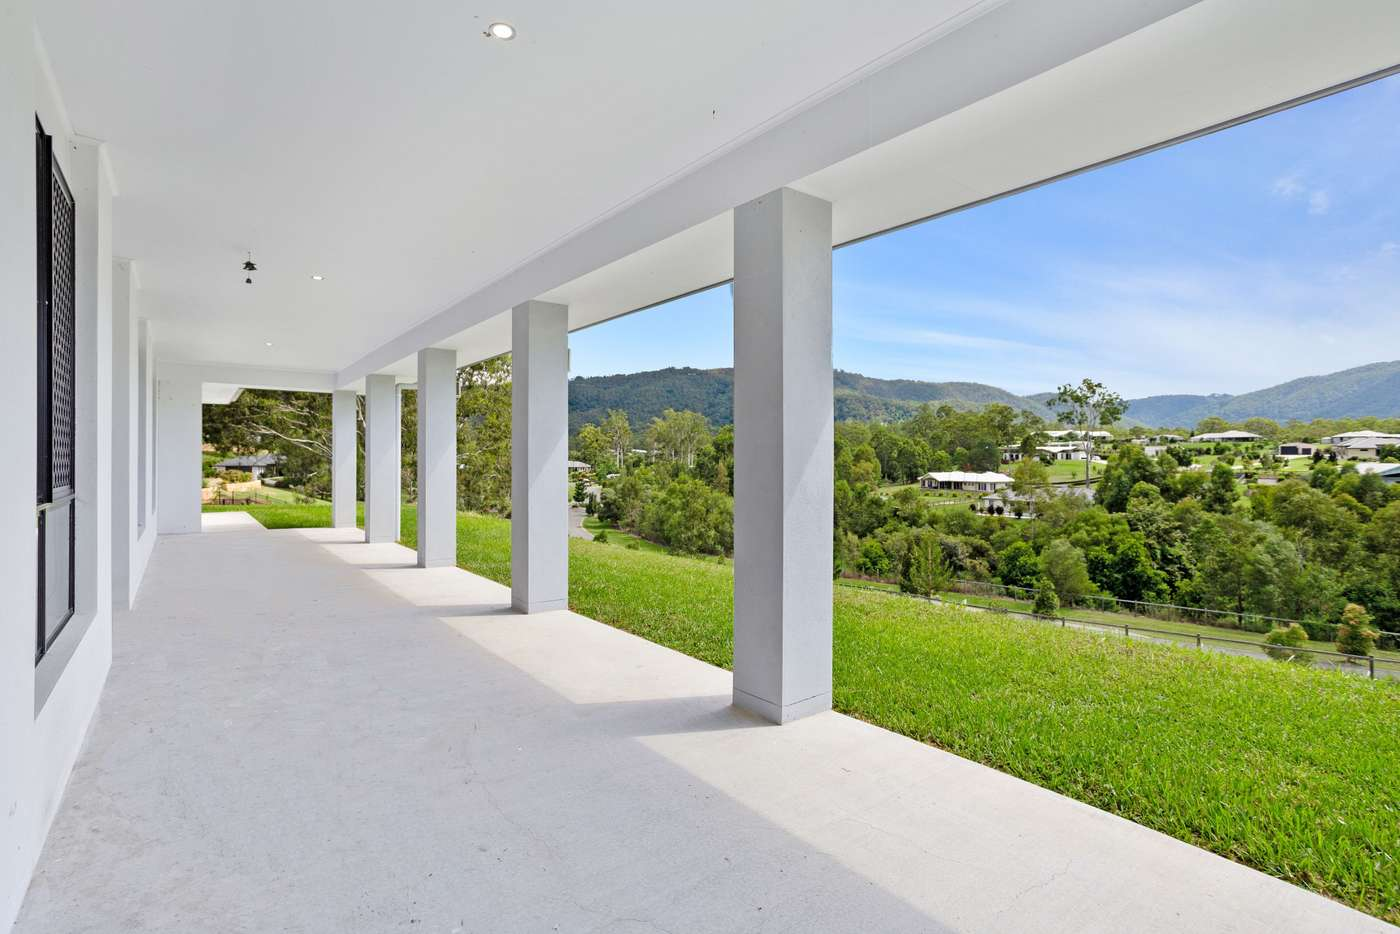 Main view of Homely house listing, 21 Moonlight Avenue, Highvale QLD 4520